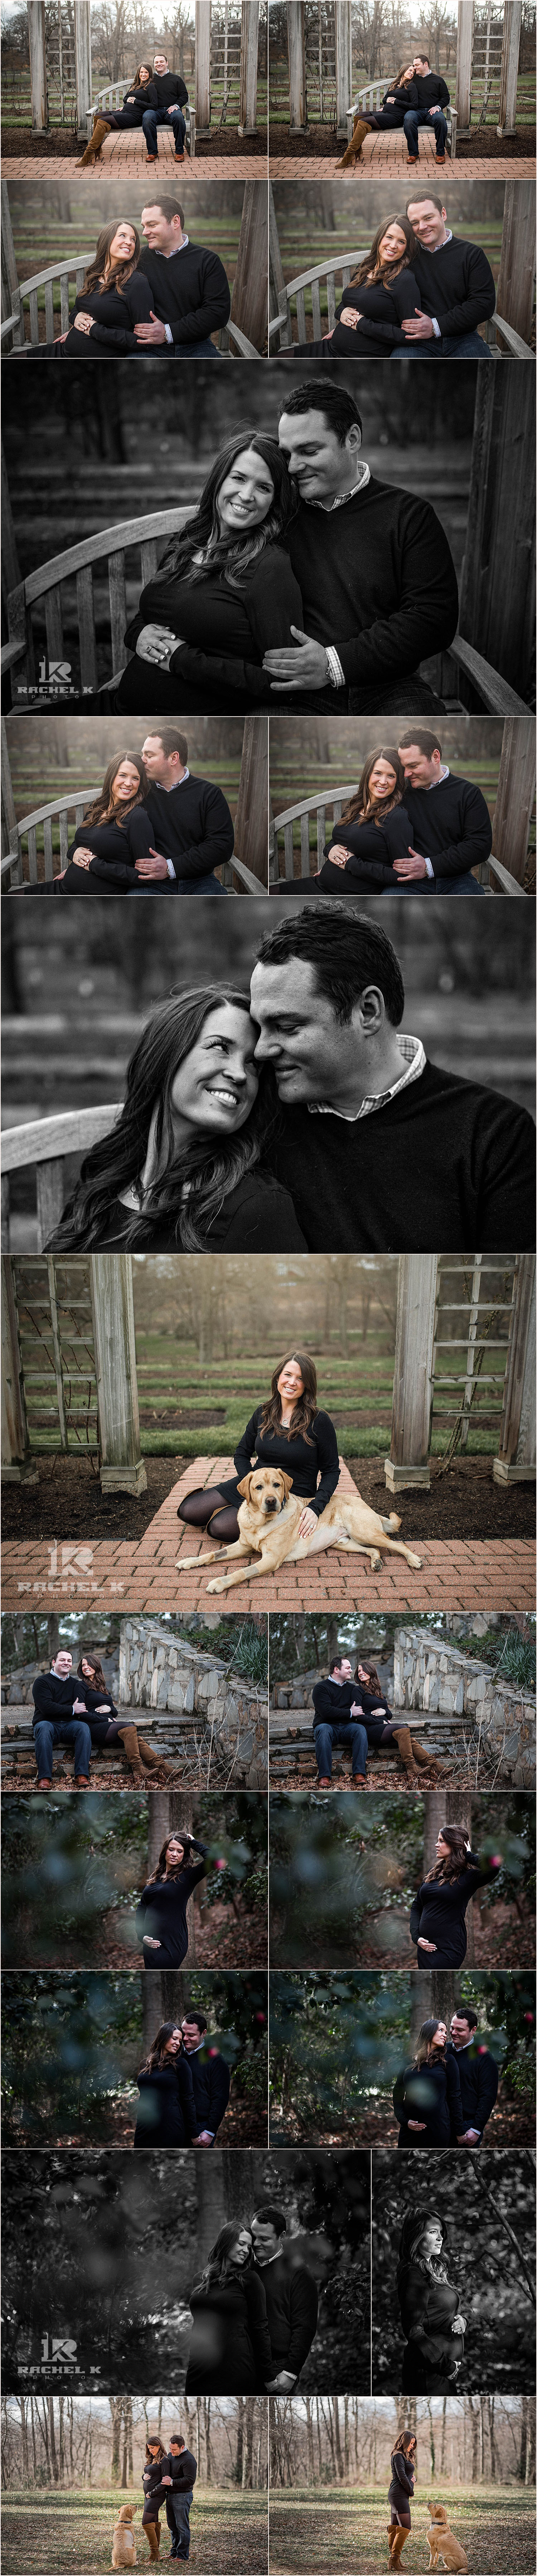 Maternity session with golden retriever in Arlington Virginia by Rachel K Photo